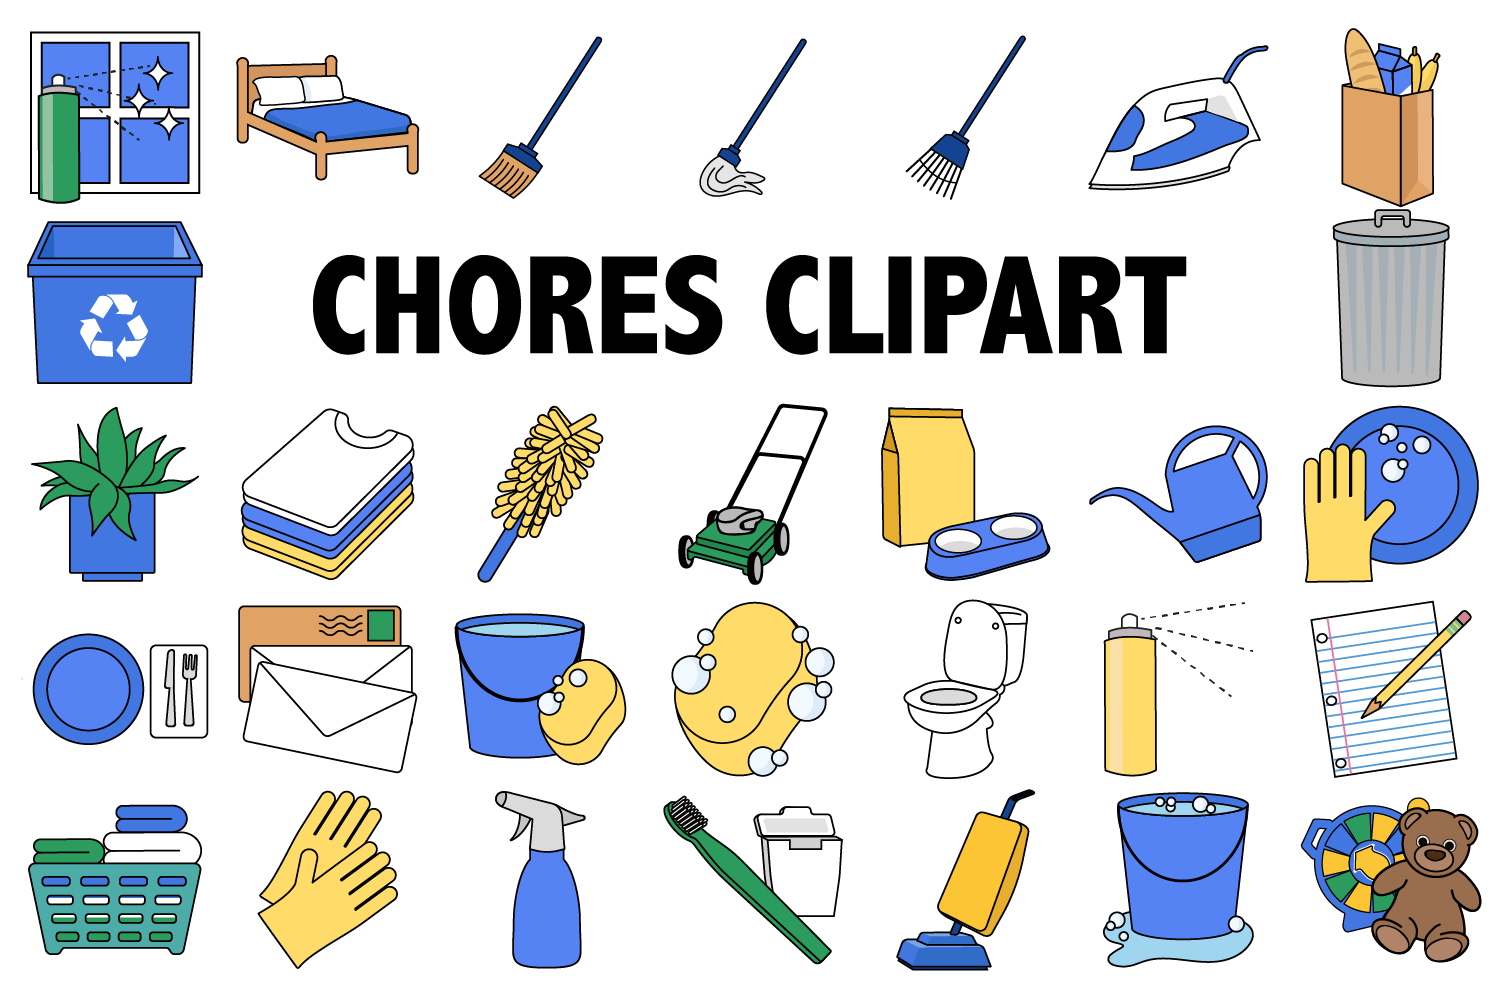 hight resolution of chores clipart example image 1